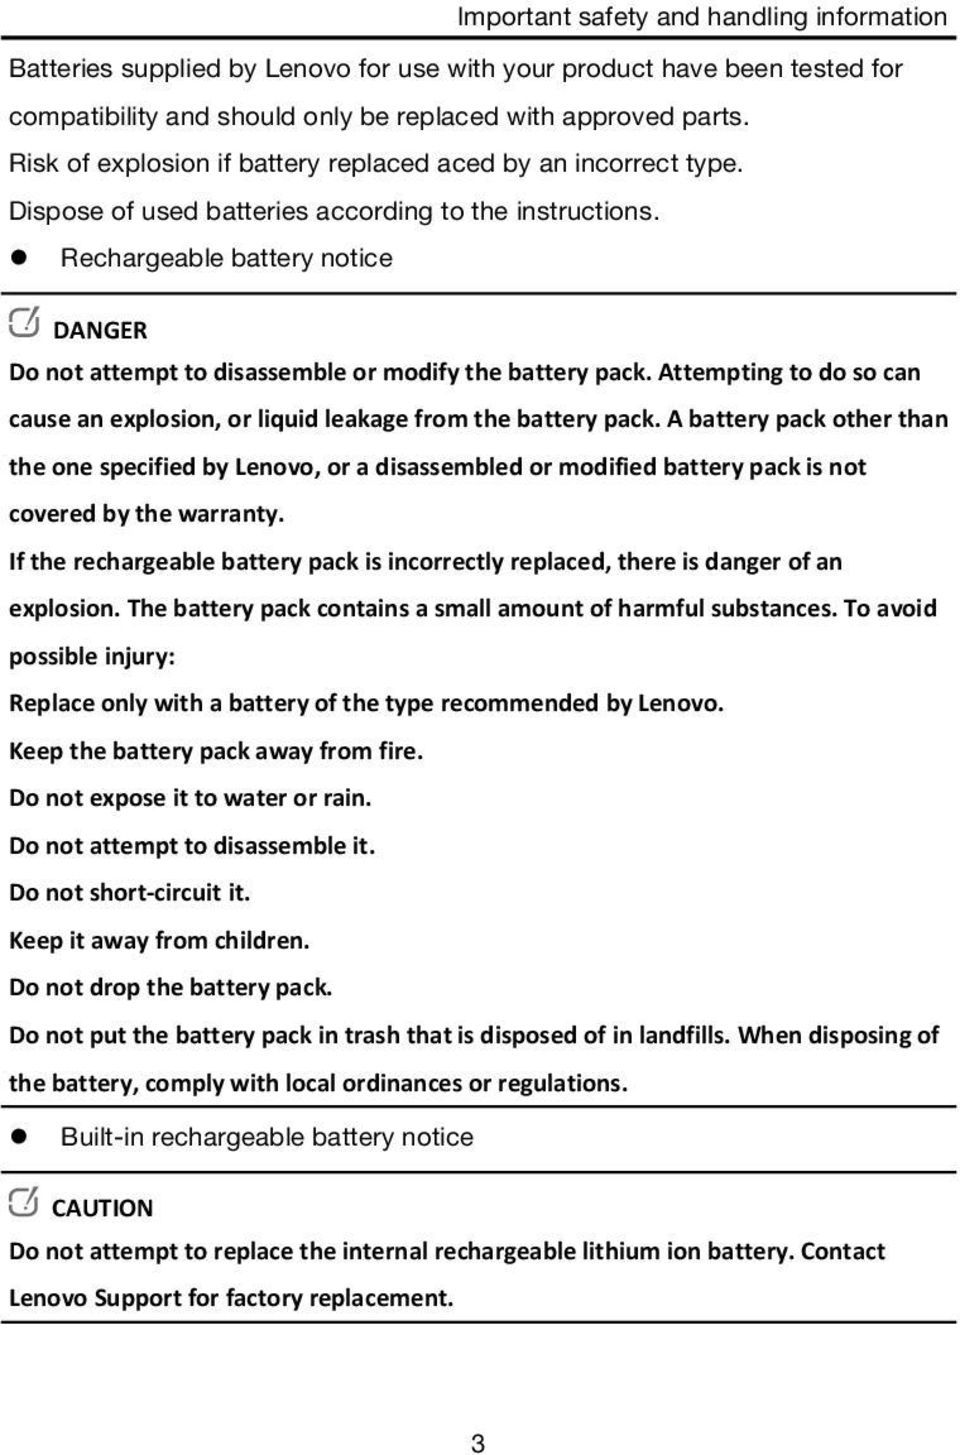 Rechargeable battery notice DANGER Do not attempt to disassemble or modify the battery pack. Attempting to do so can cause an explosion, or liquid leakage from the battery pack.